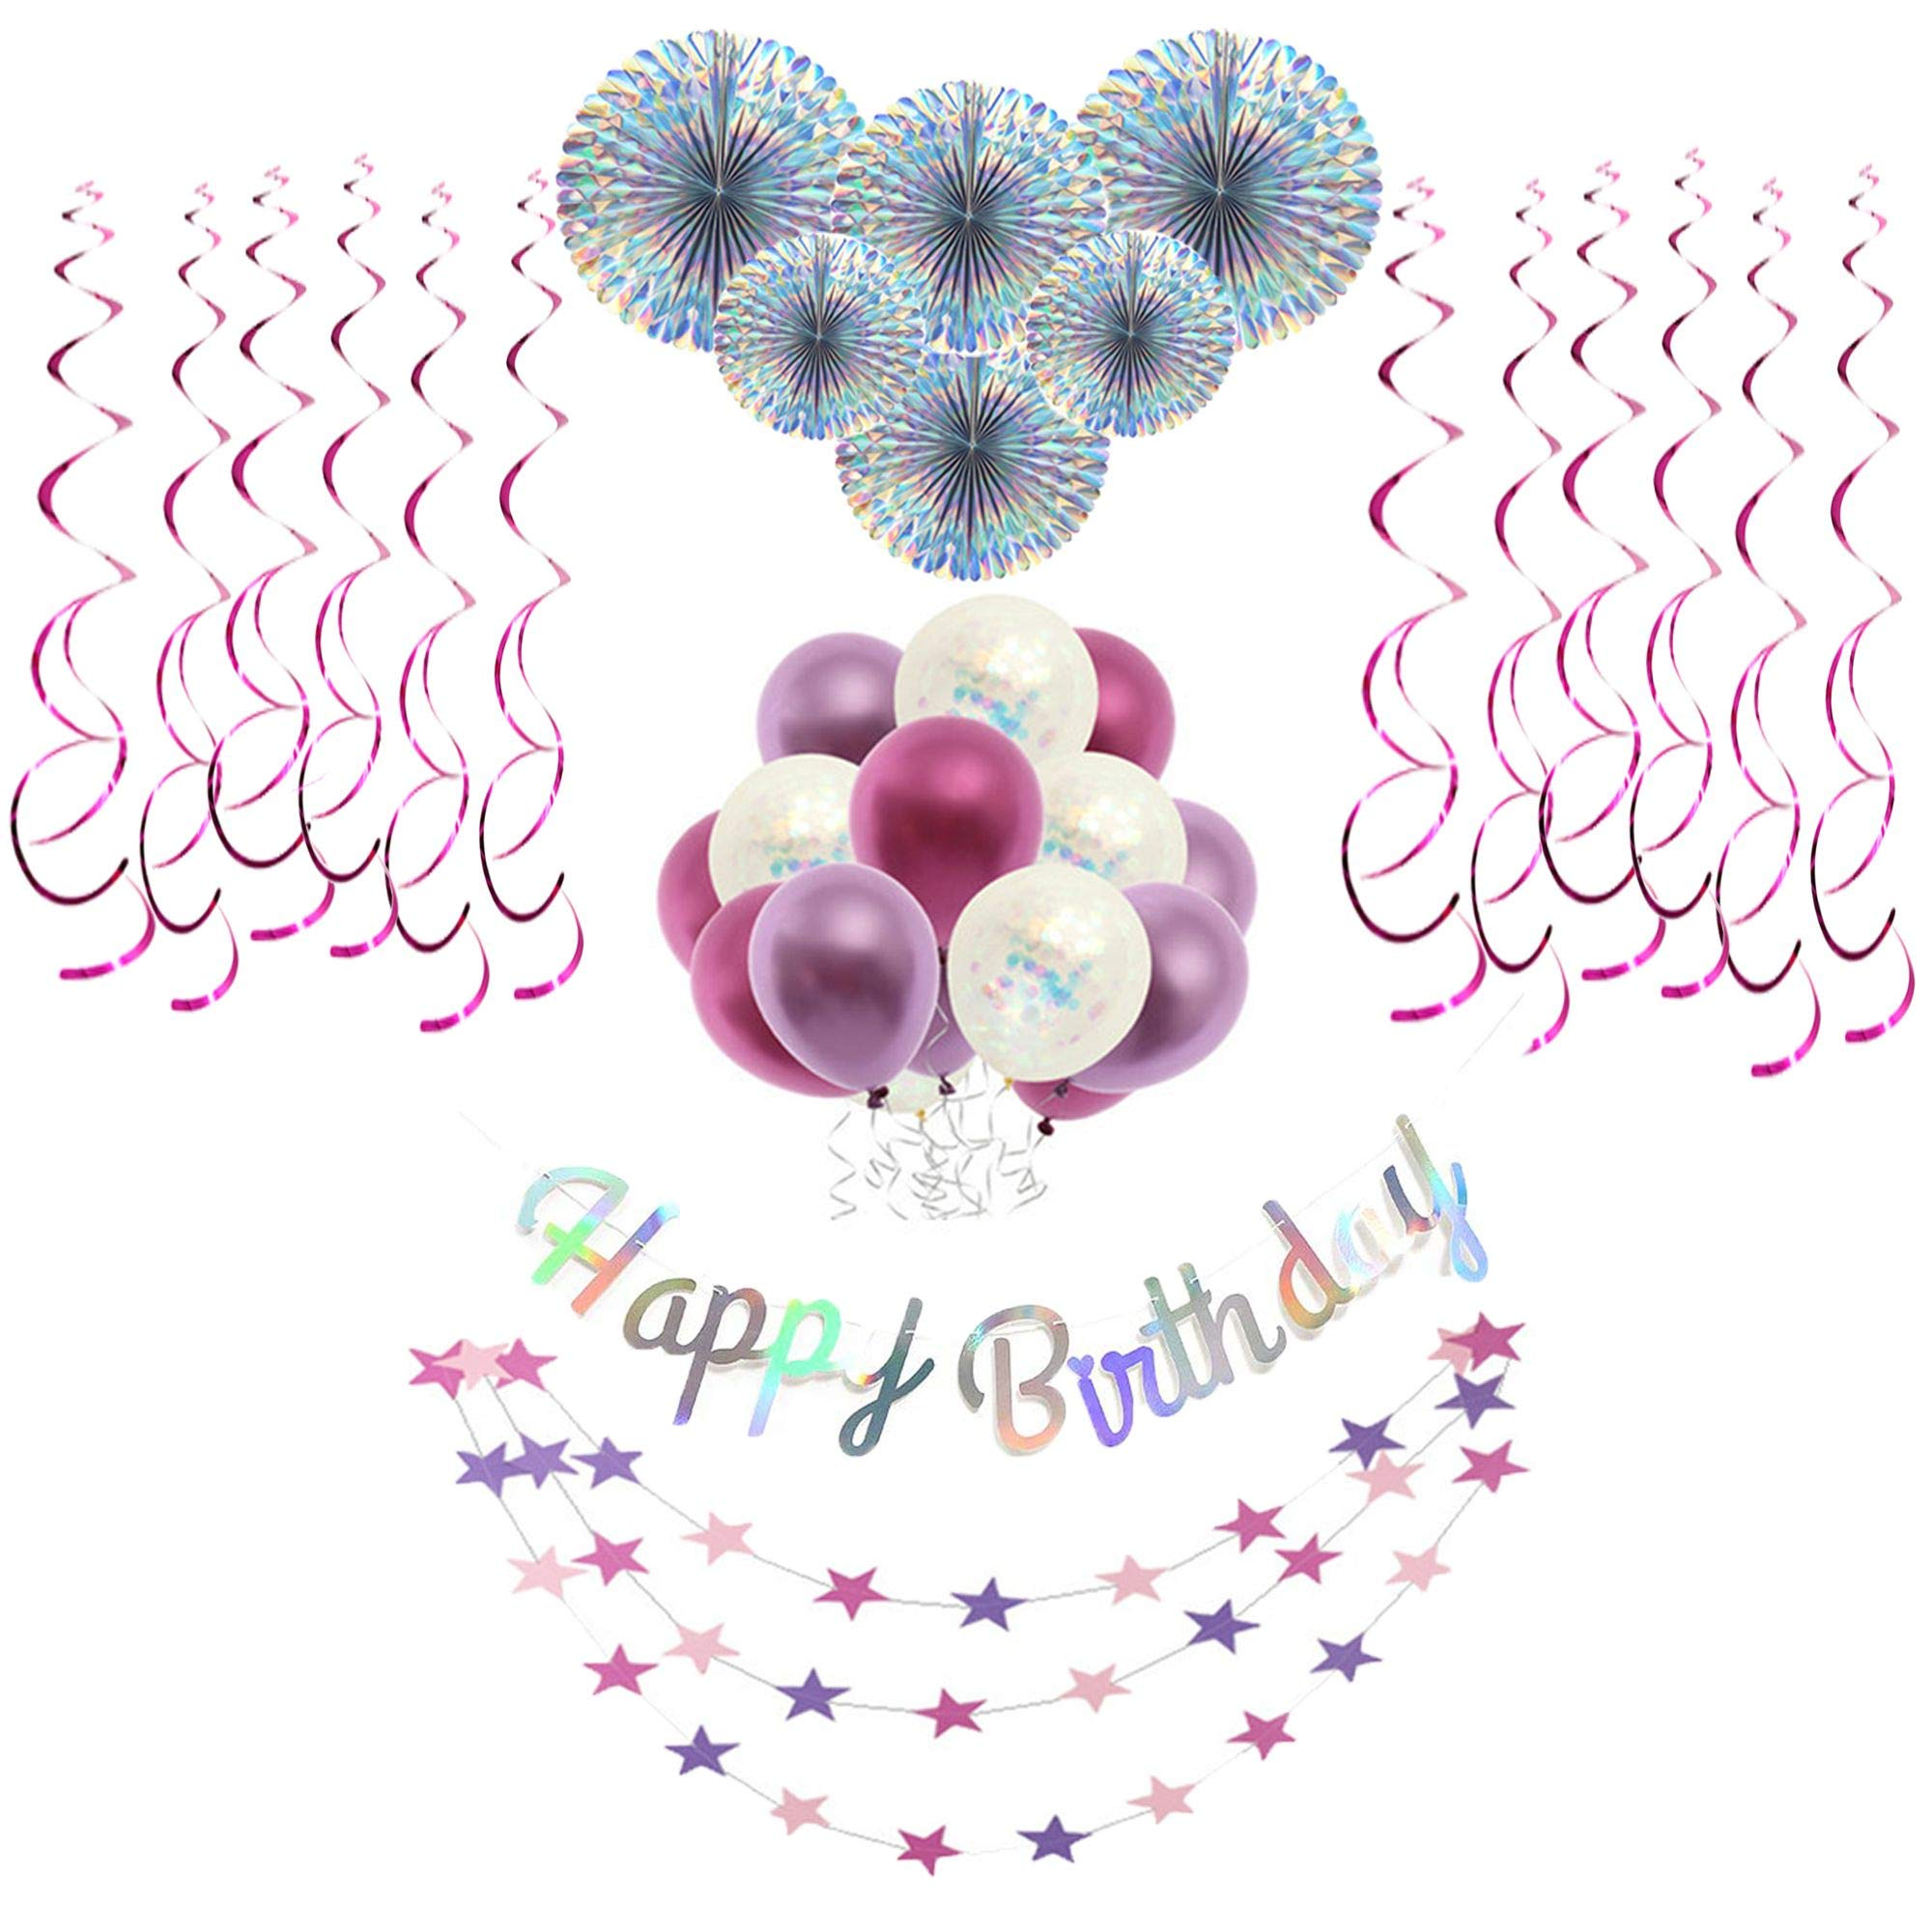 Birthday Decorations for Women,Party Supplies in Purple,Female 40th 50th 60th Birthday Decorations,Laser Paper Fans,Confetti Balloons, Hanging Swirls,Star-shaped Garland and the Happy Birthday Banner. by Sandy